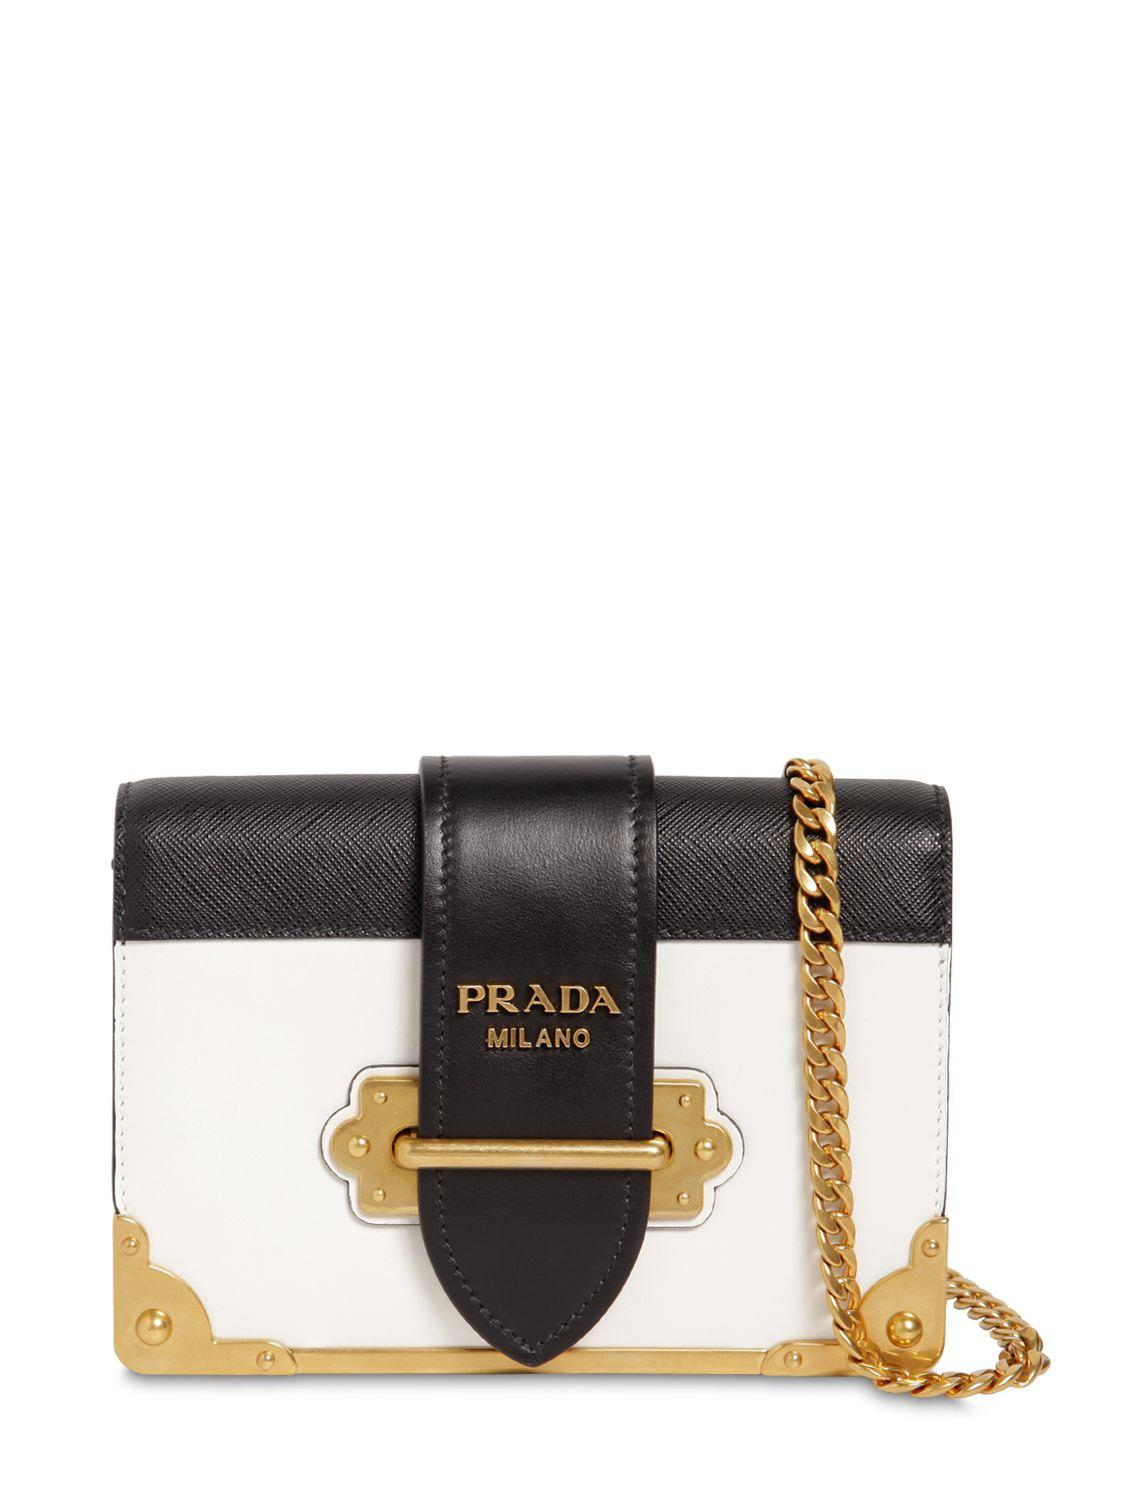 bf4b0dc125f0 Lyst - Prada Small Cahier Leather Shoulder Bag in Black - Save 4%